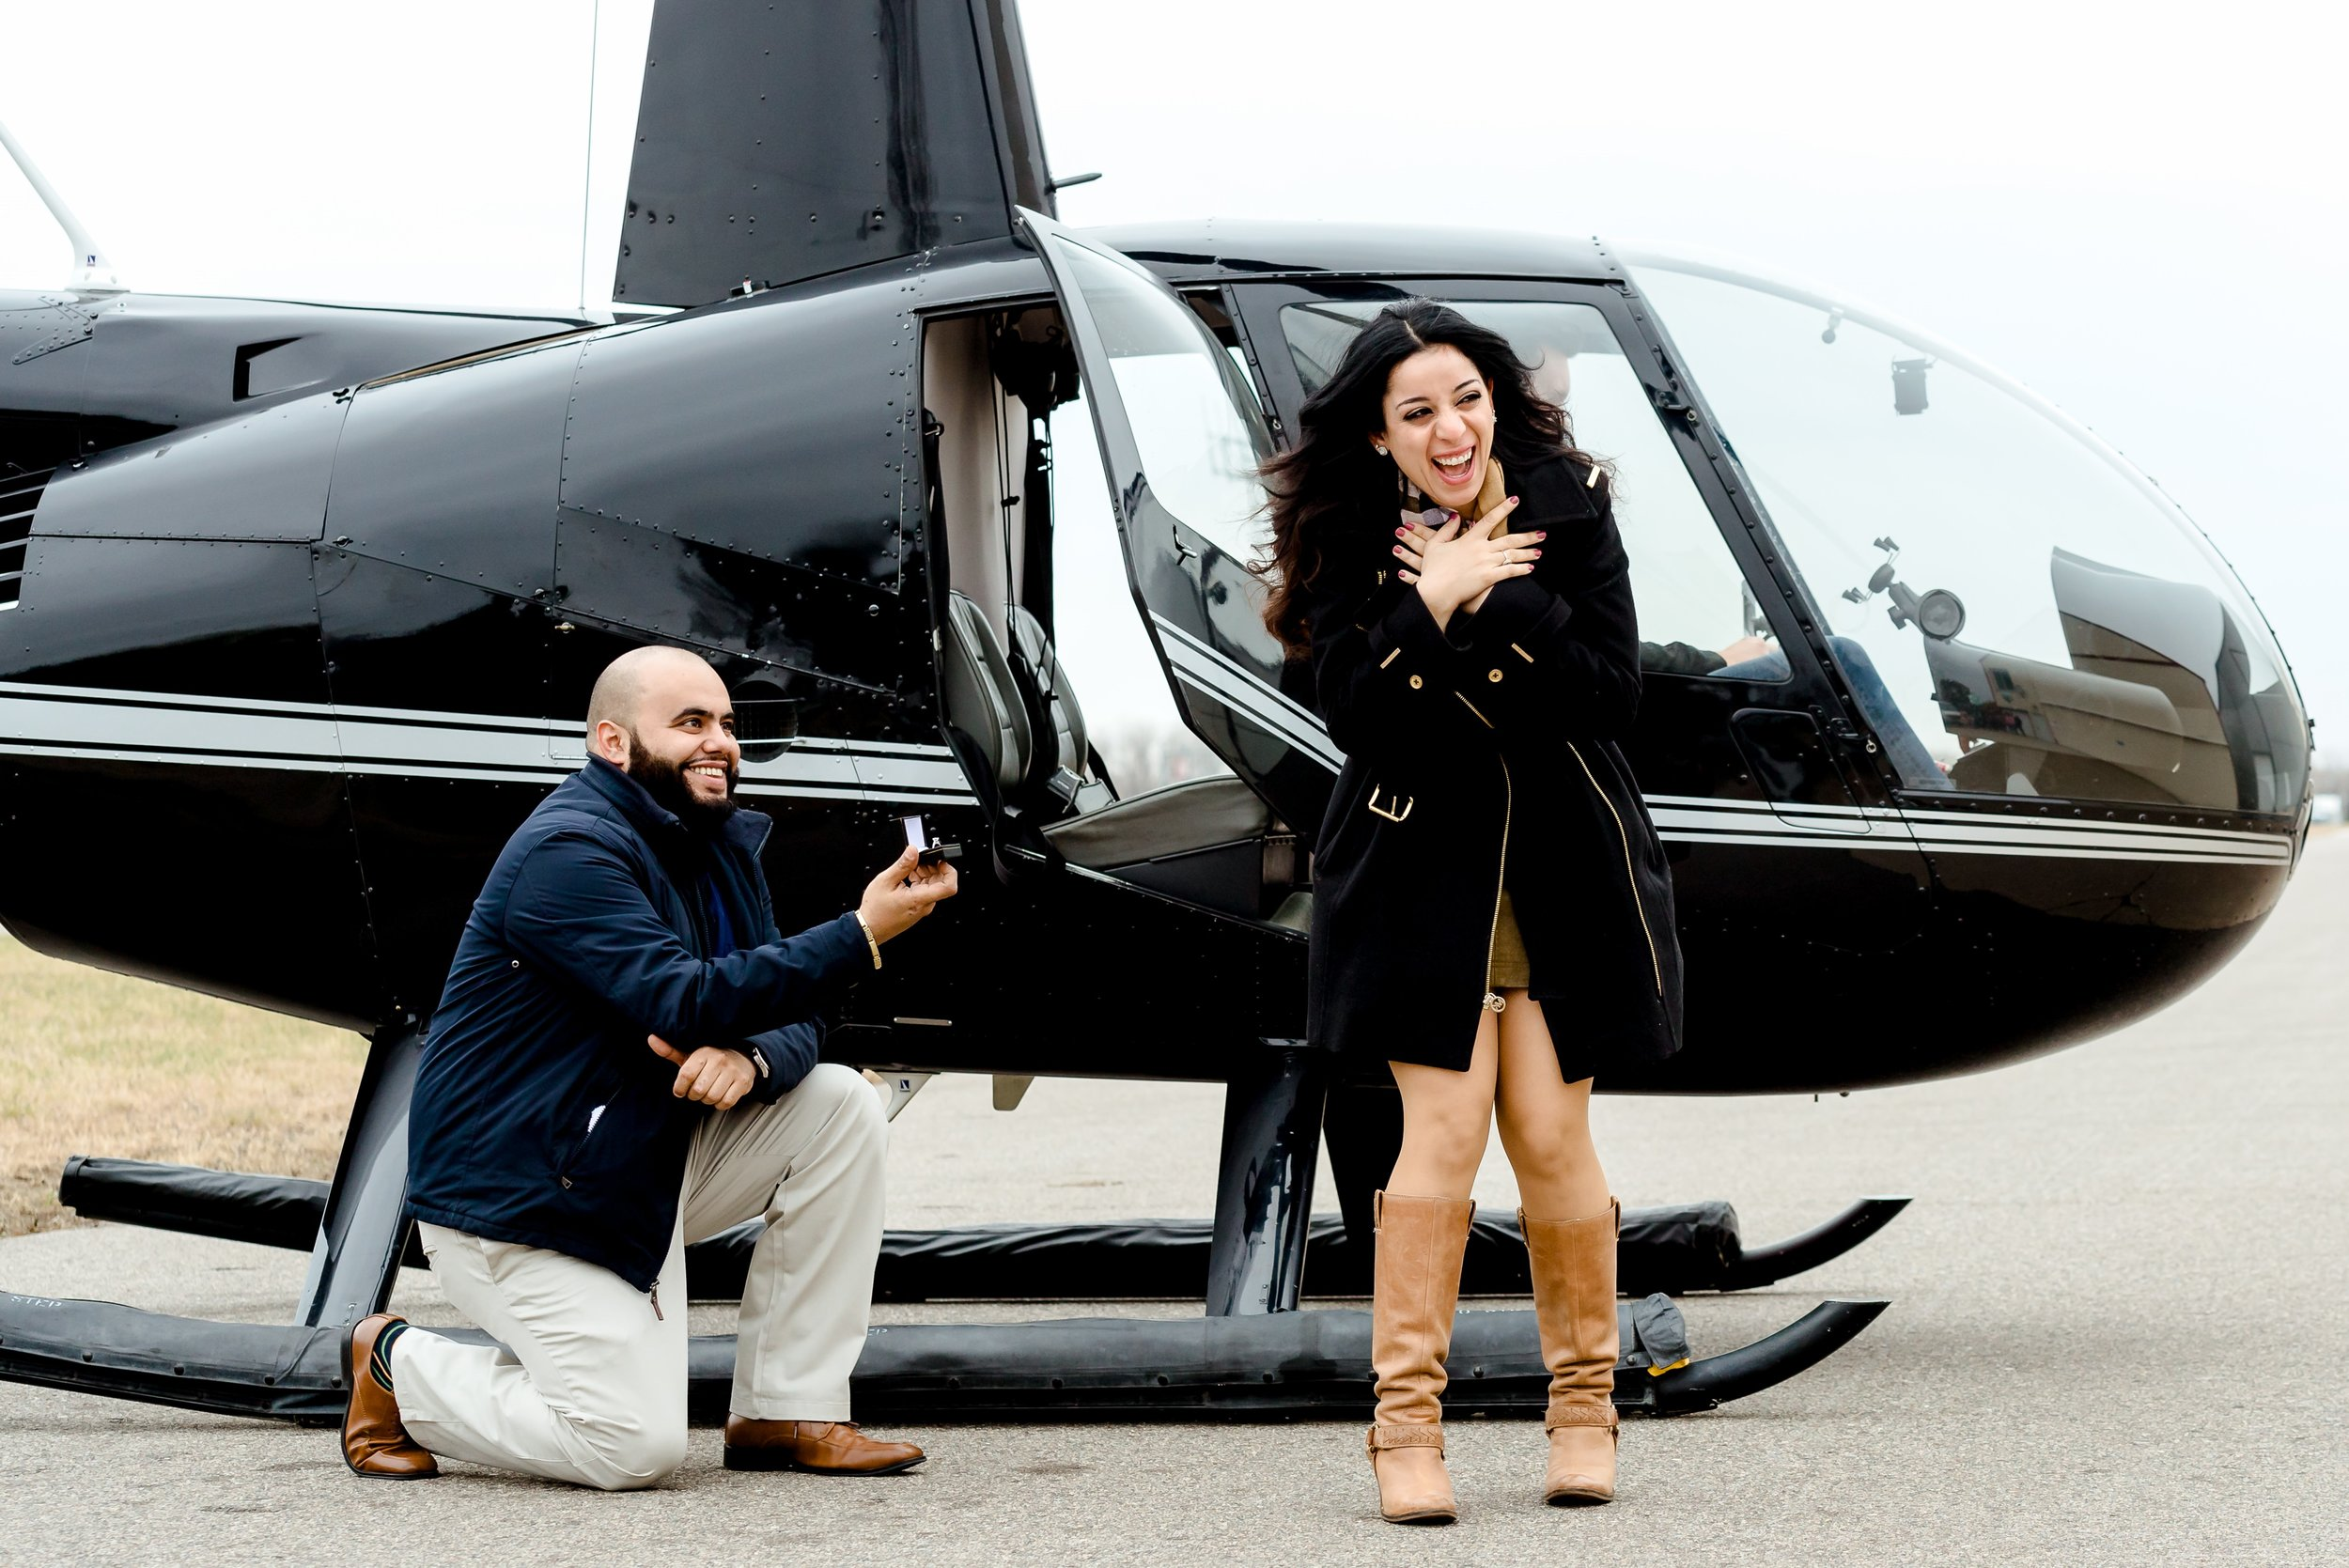 EPIC HELICOPTER PROPOSAL - Blaine, MN